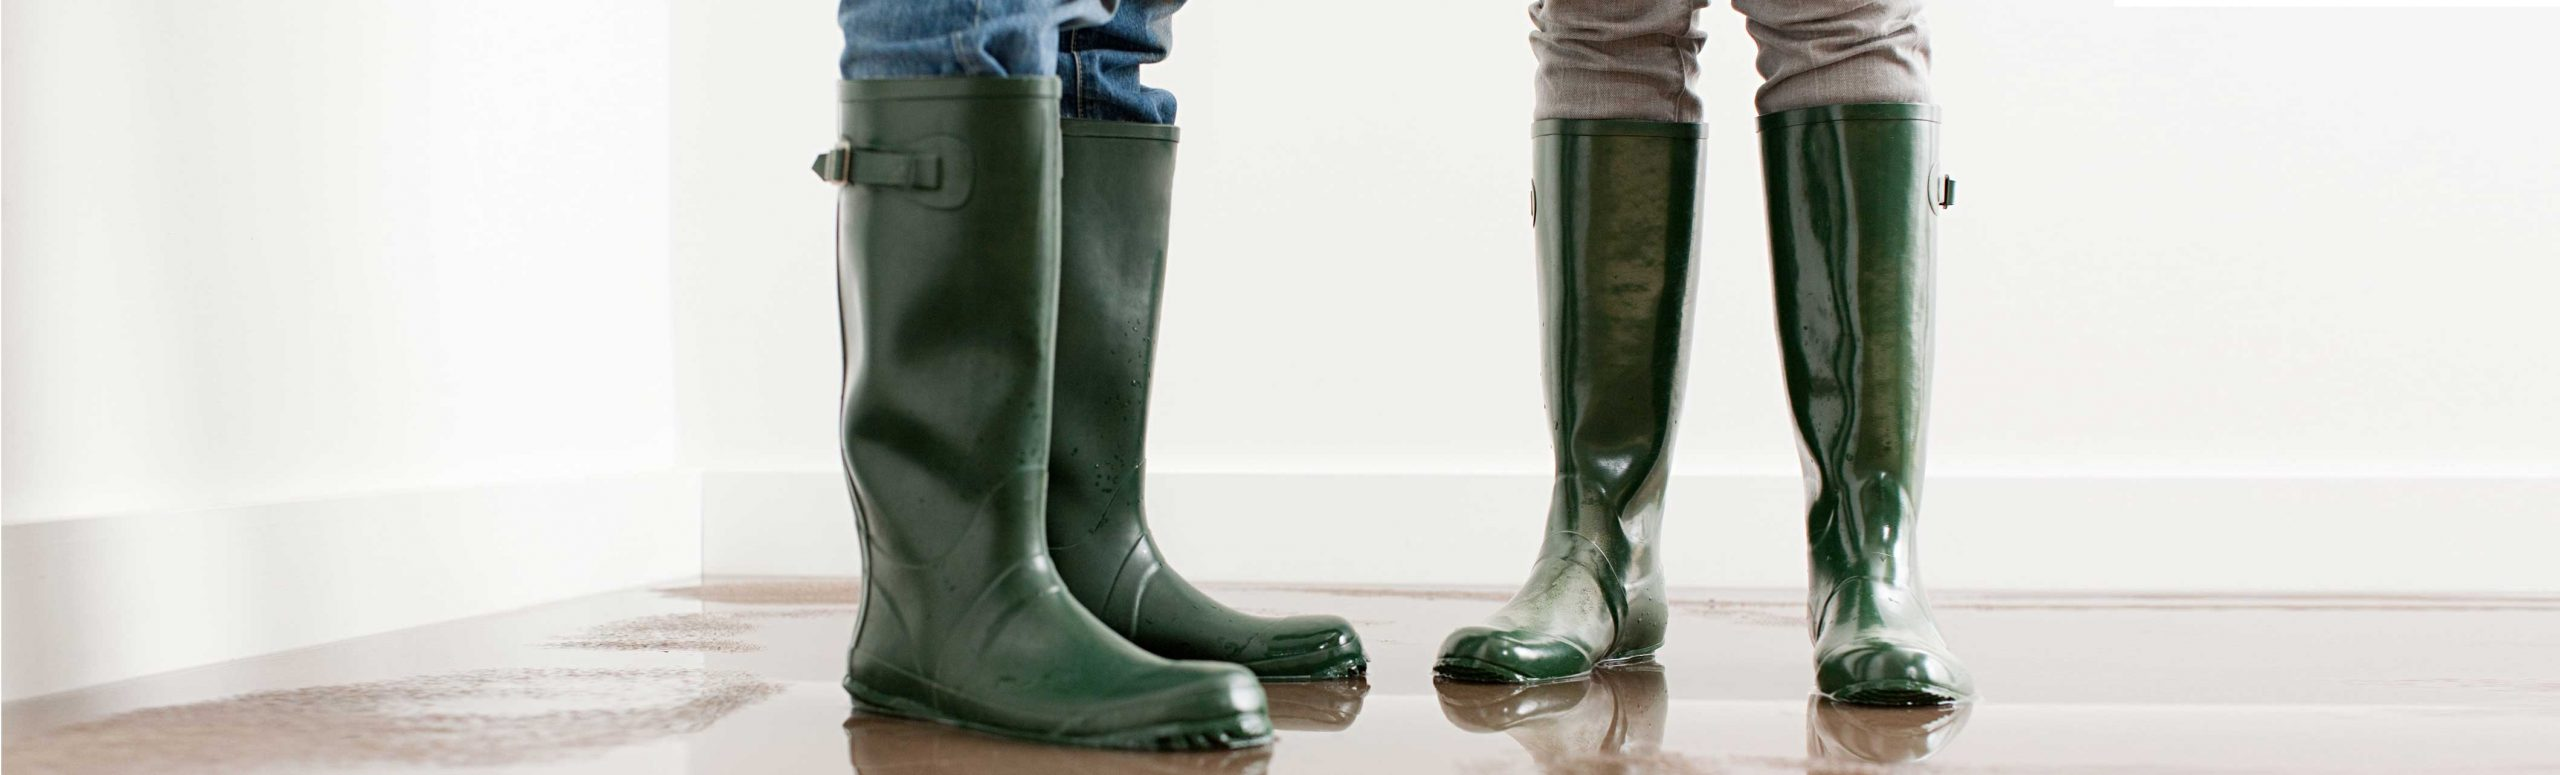 two people wearing rubber boots